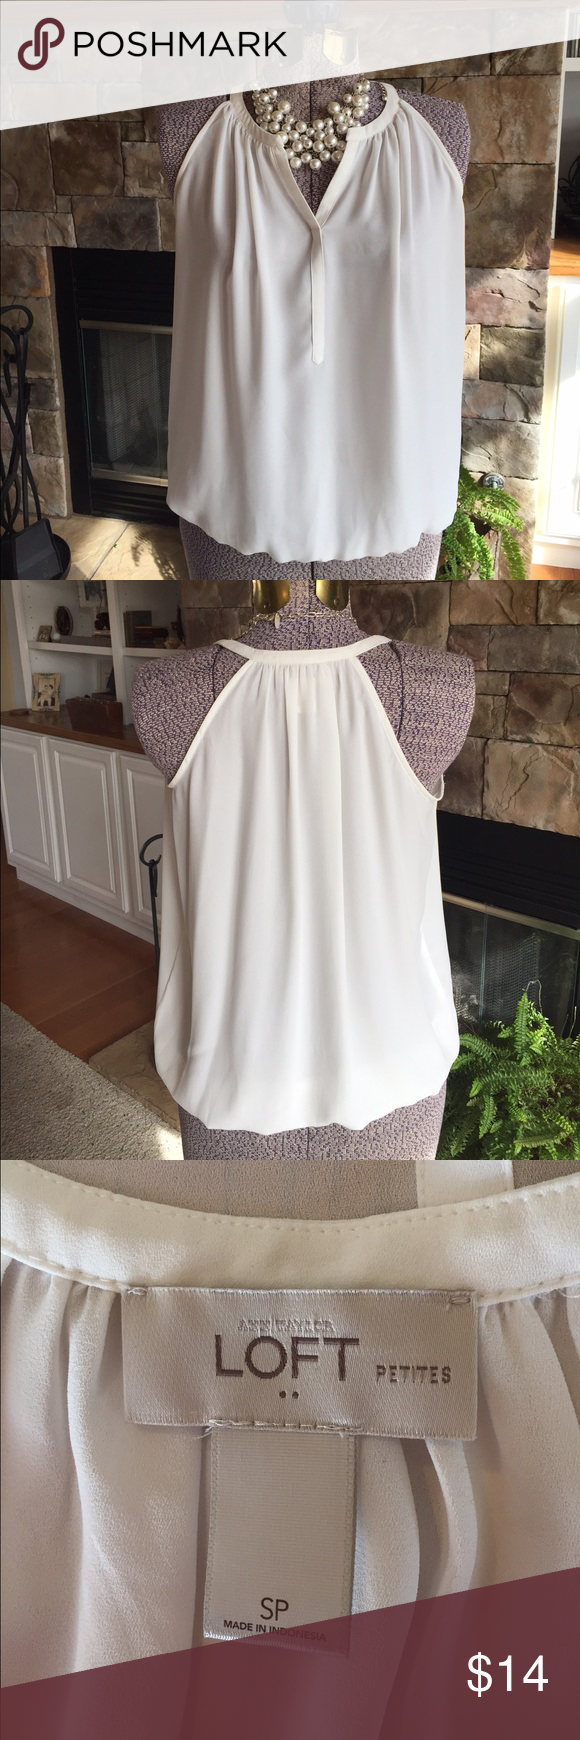 Ann Taylor Loft tank top Lovely light top by Loft. Perfect for layering or alone on those hot days. V-neck with elastic gathering at waist, so flattering. Like new. 🌷 LOFT Tops Tank Tops